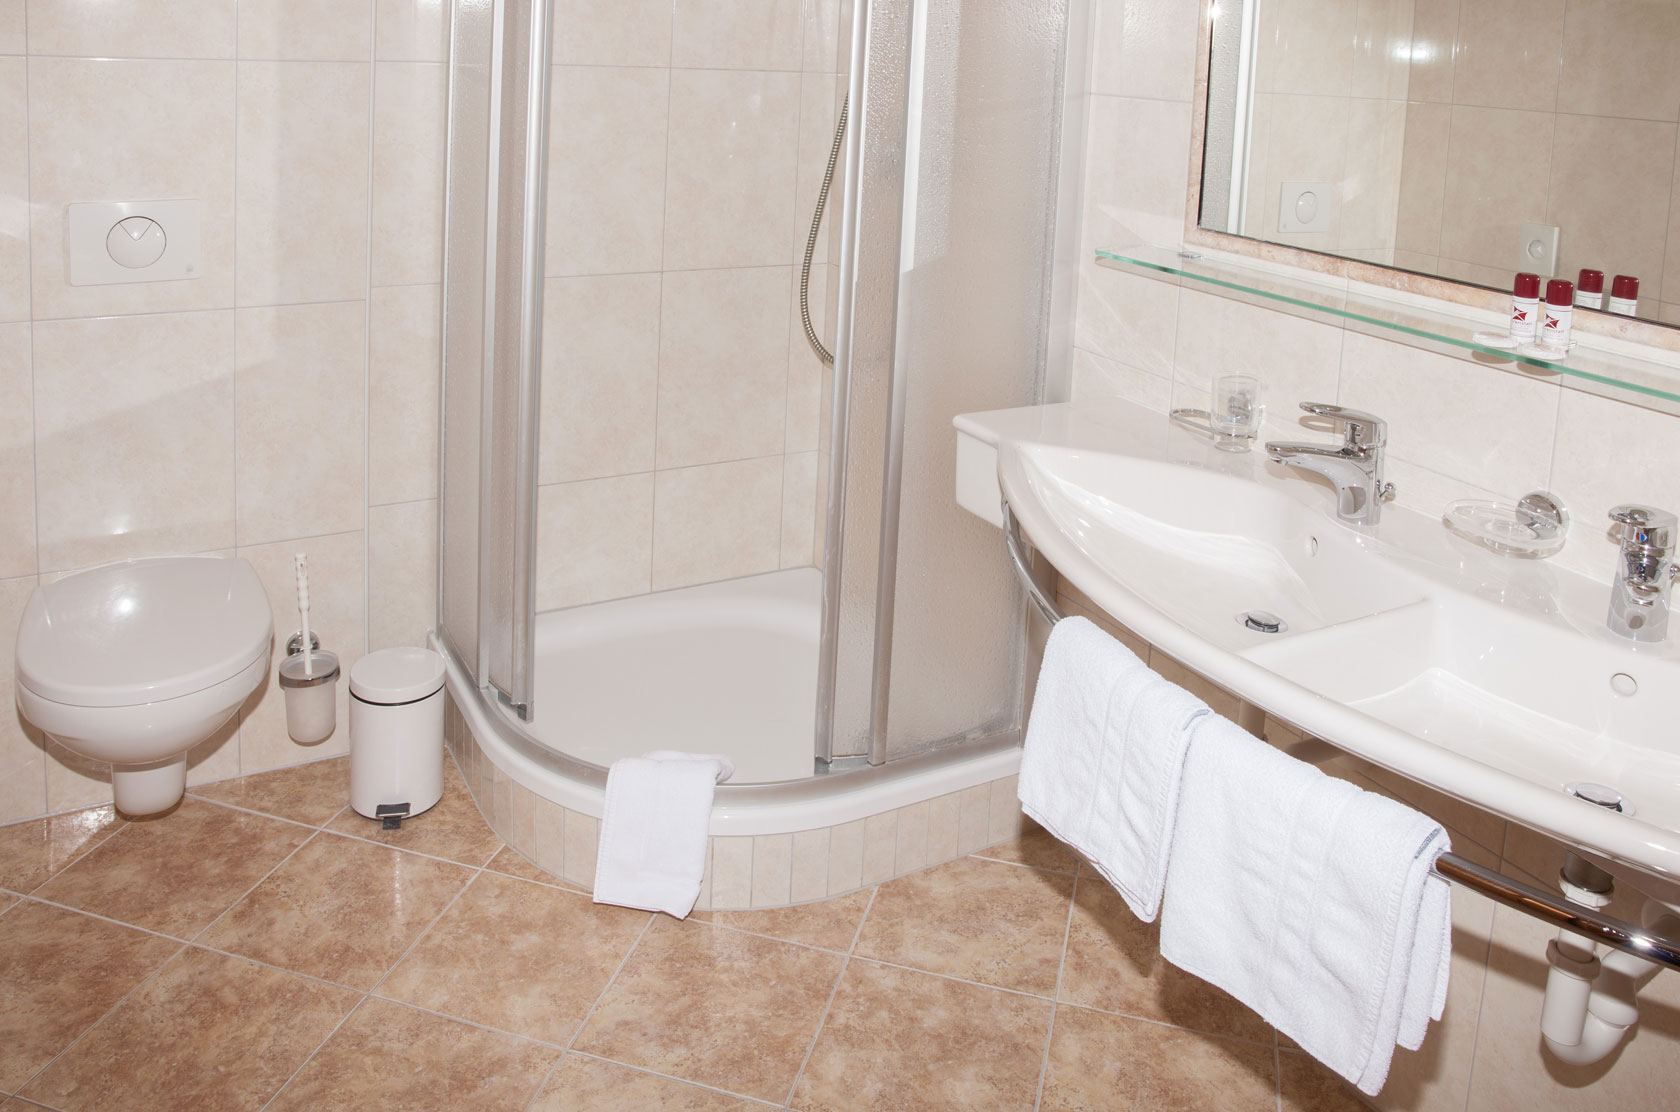 Bathroom with shower in a doubleroom